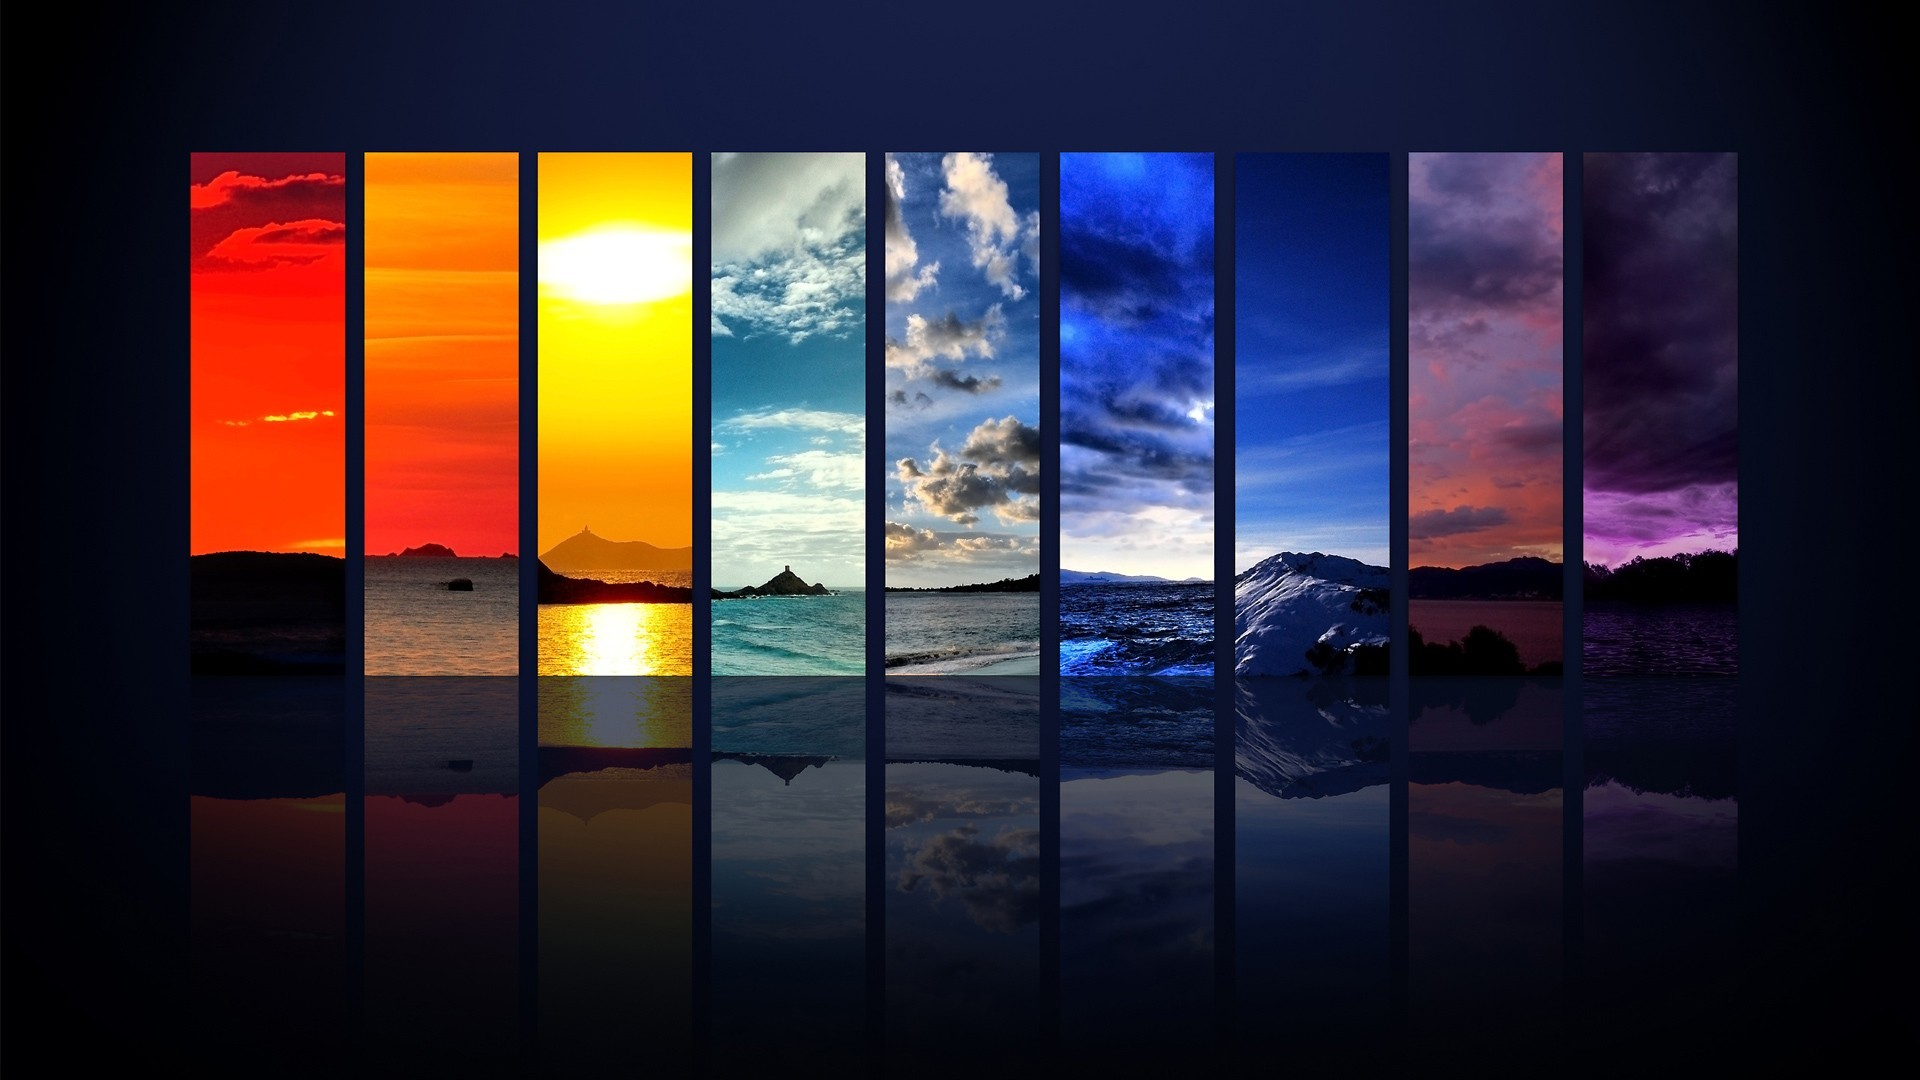 Cool backgrounds for pc 61 images - Wallpapers pc ...